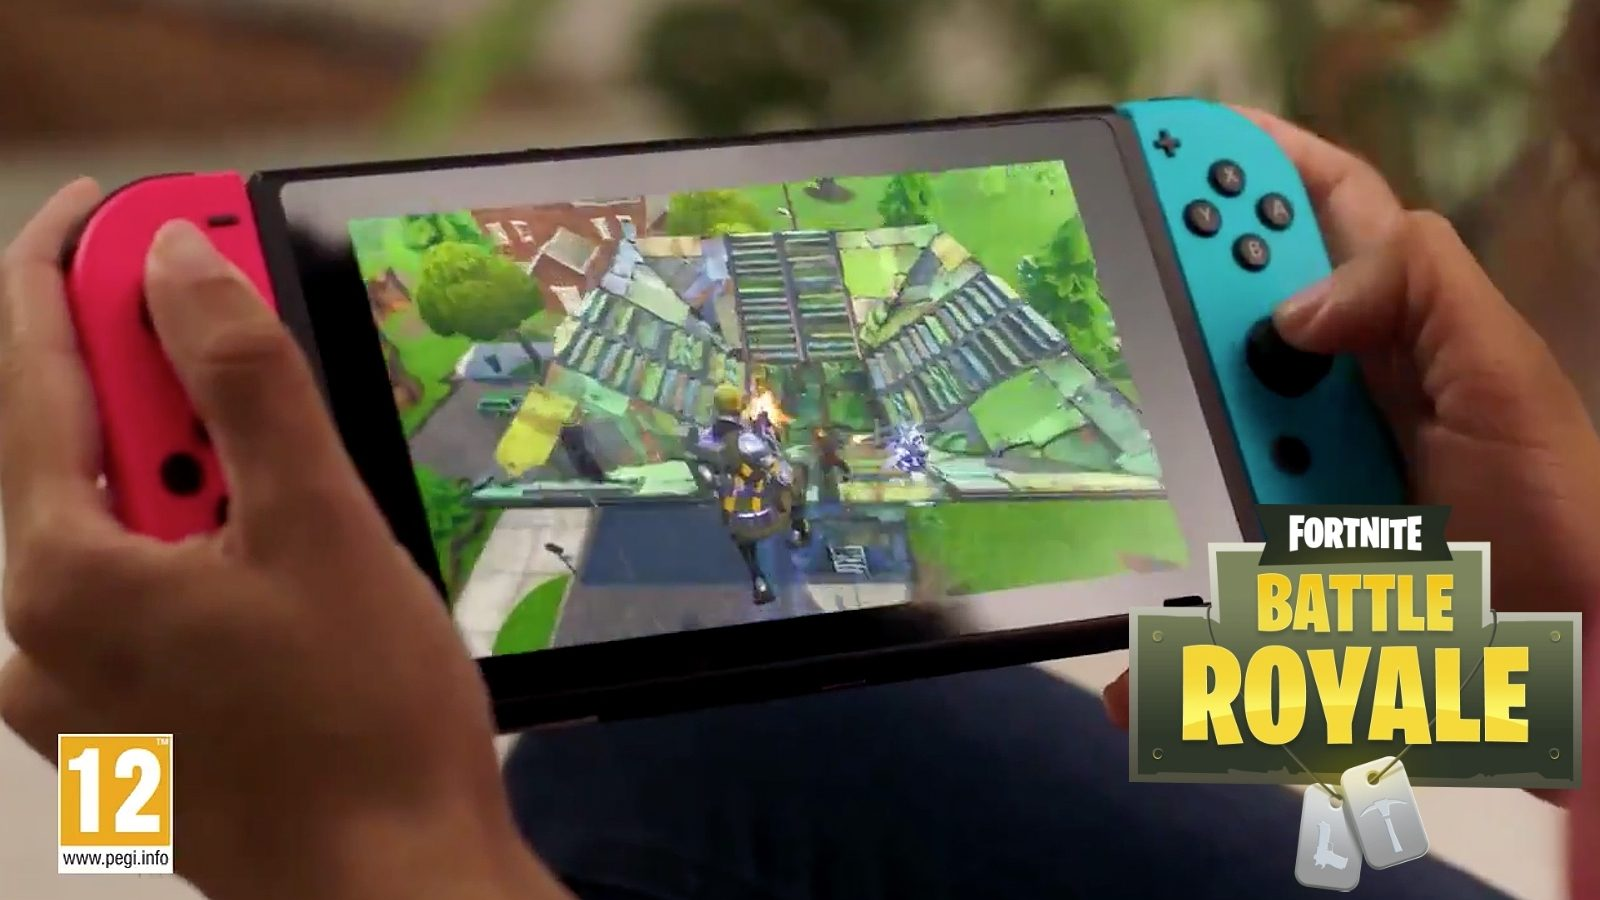 Fortnite: How to aim better on the Nintendo Switch  - PwrDown